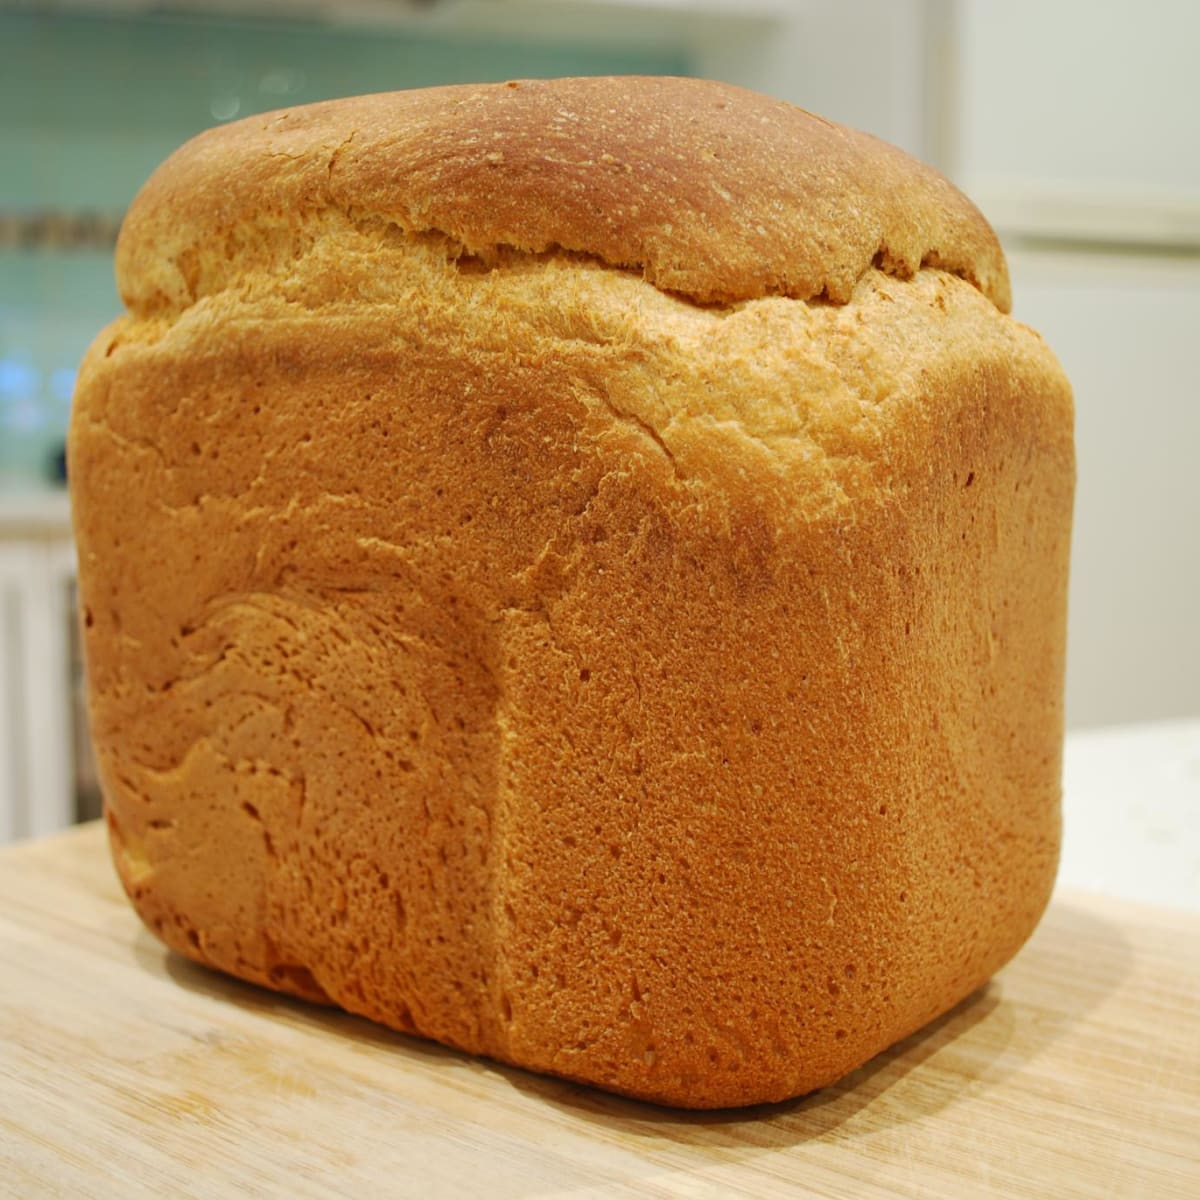 Hamilton Beach Dough And Bread Maker Pros And Cons For Gluten Free Baking Delishably Food And Drink